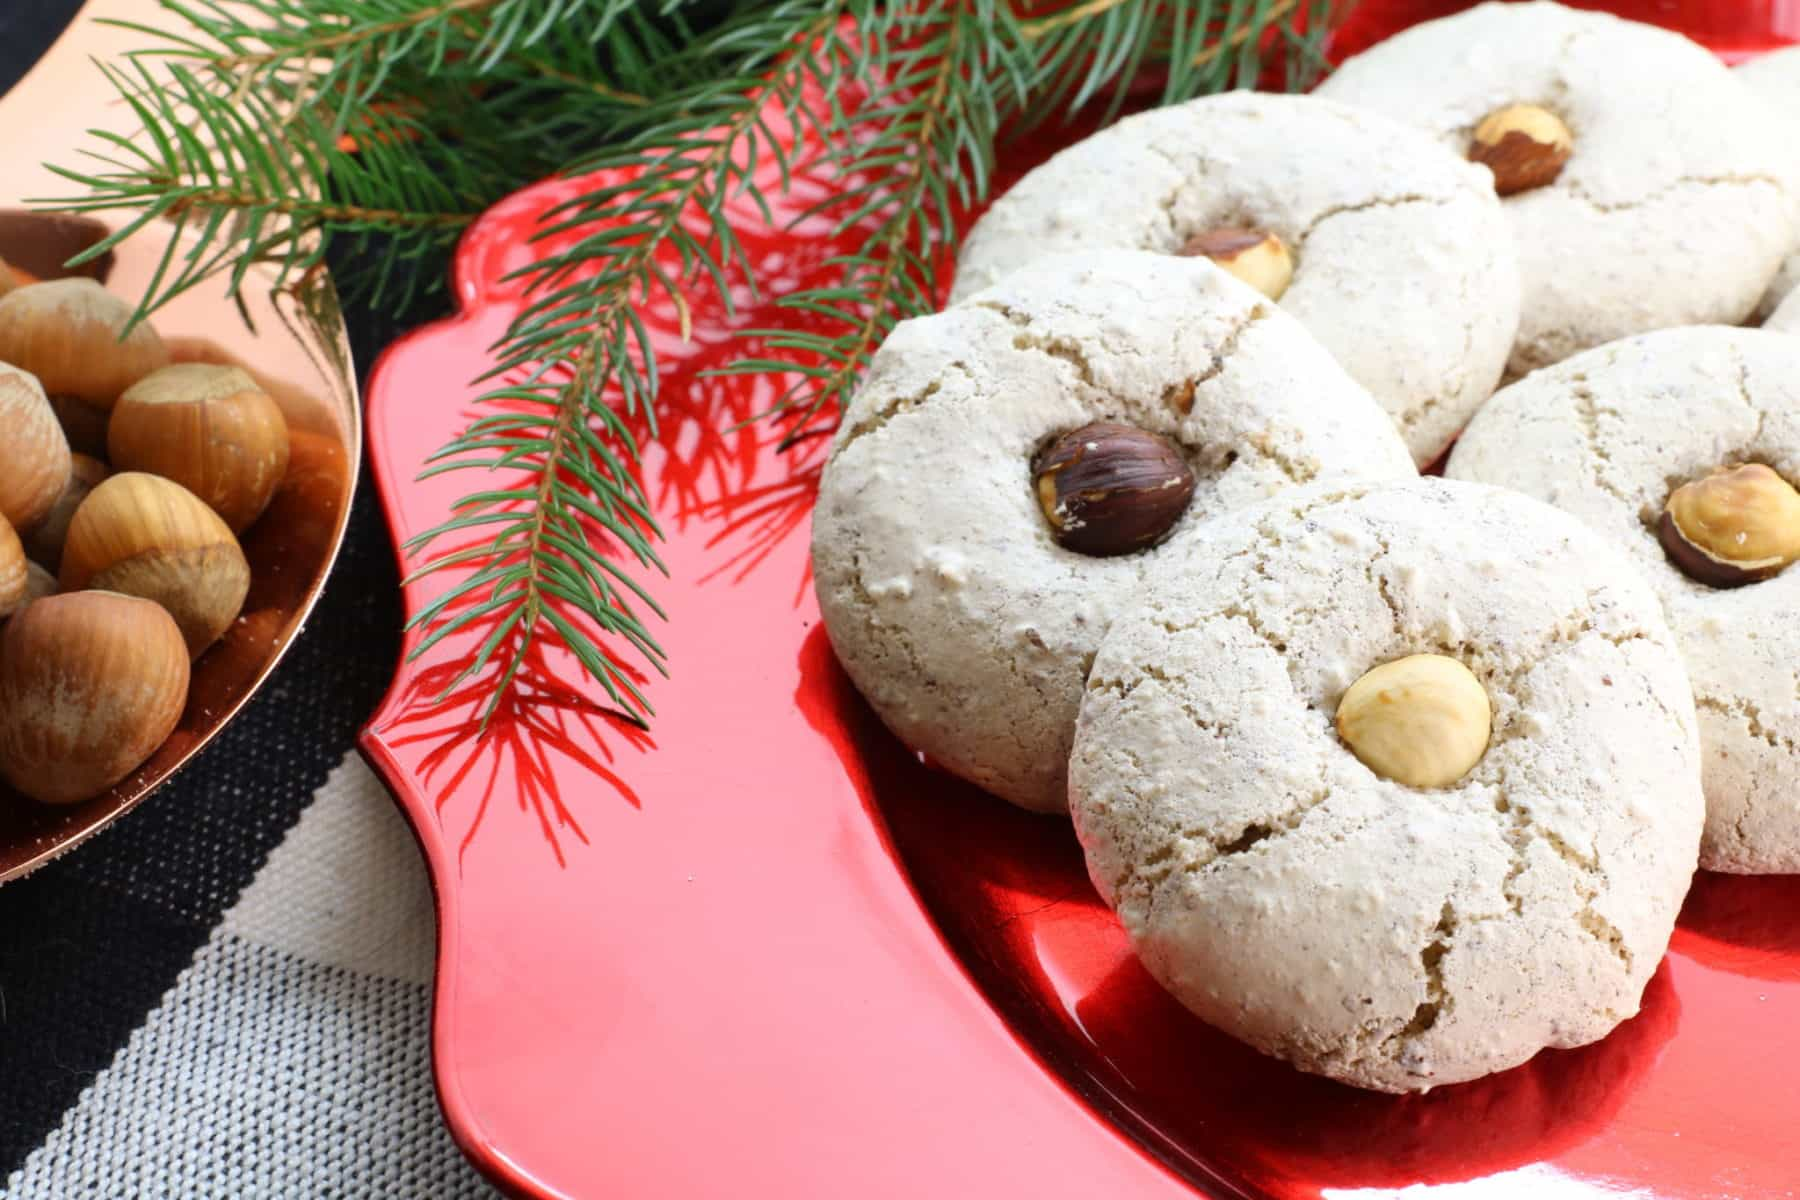 Christmas Cookie Recipes Christmas Advents Calender Customs and Traditions Inkas Tour Travelblog Baking Blog Food around the World